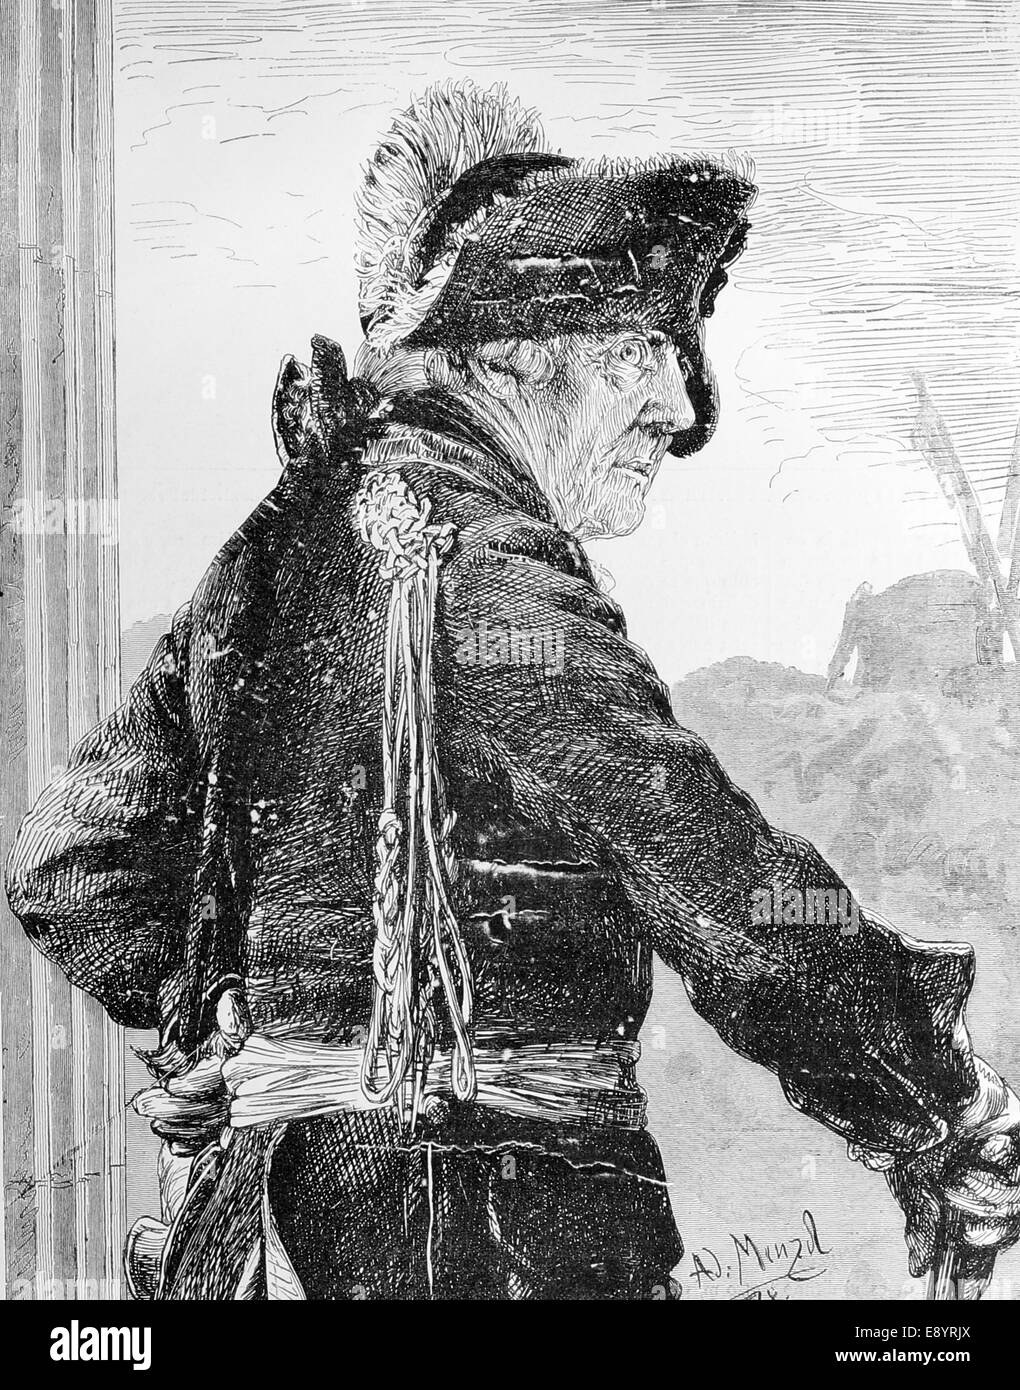 Frederick II the Great (1712-1786). King of Prussia. Drawing by Adolph Menzel (1815-1905). Engraving. Artistic Illustration, - Stock Image